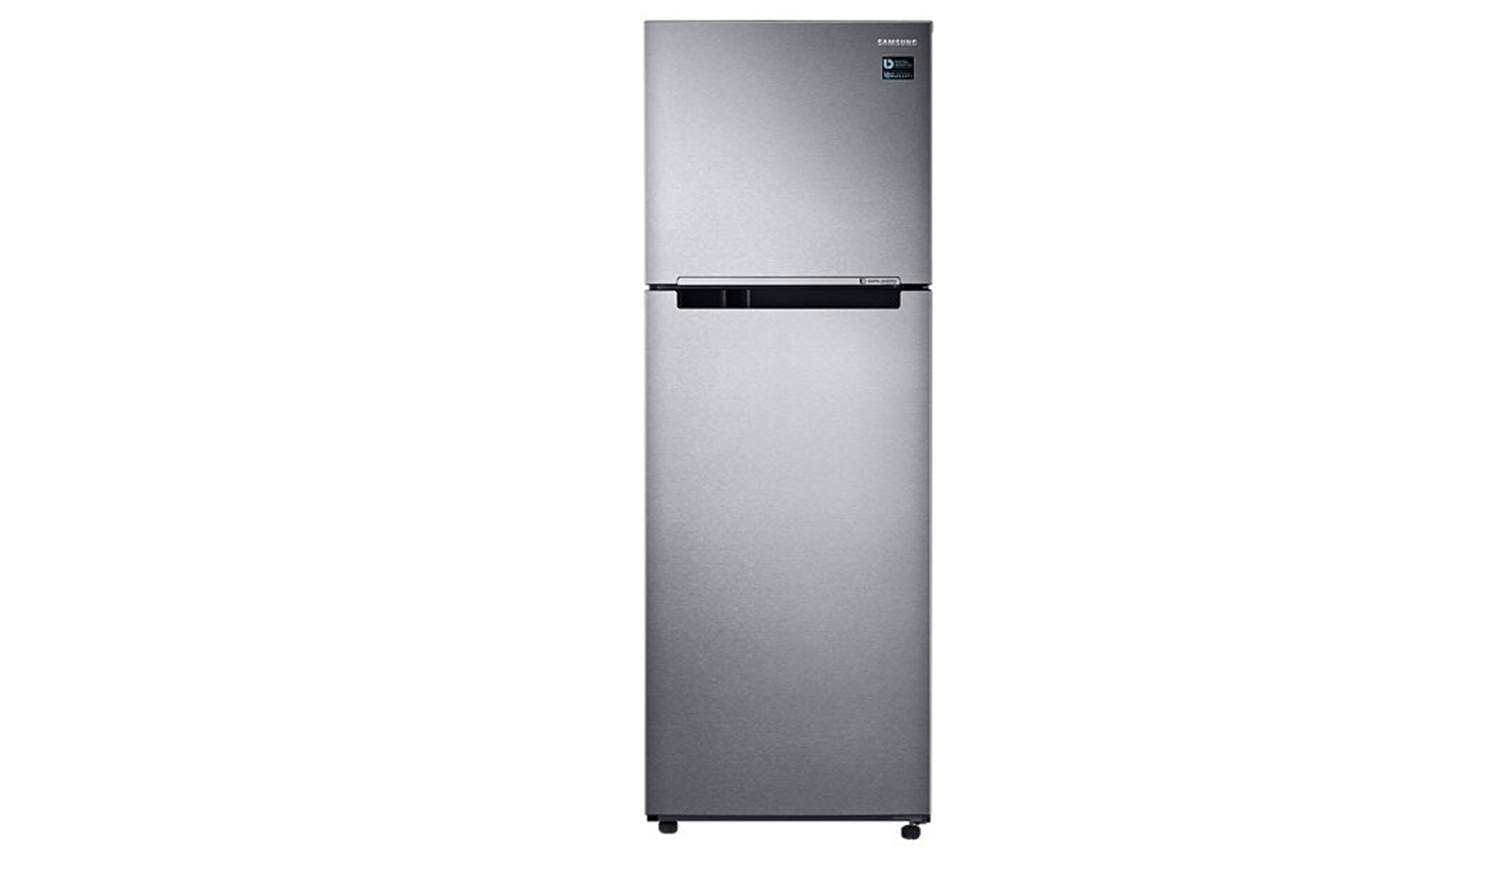 Samsung Rt32 Top Mount Fridge With Twin Cooling Plus